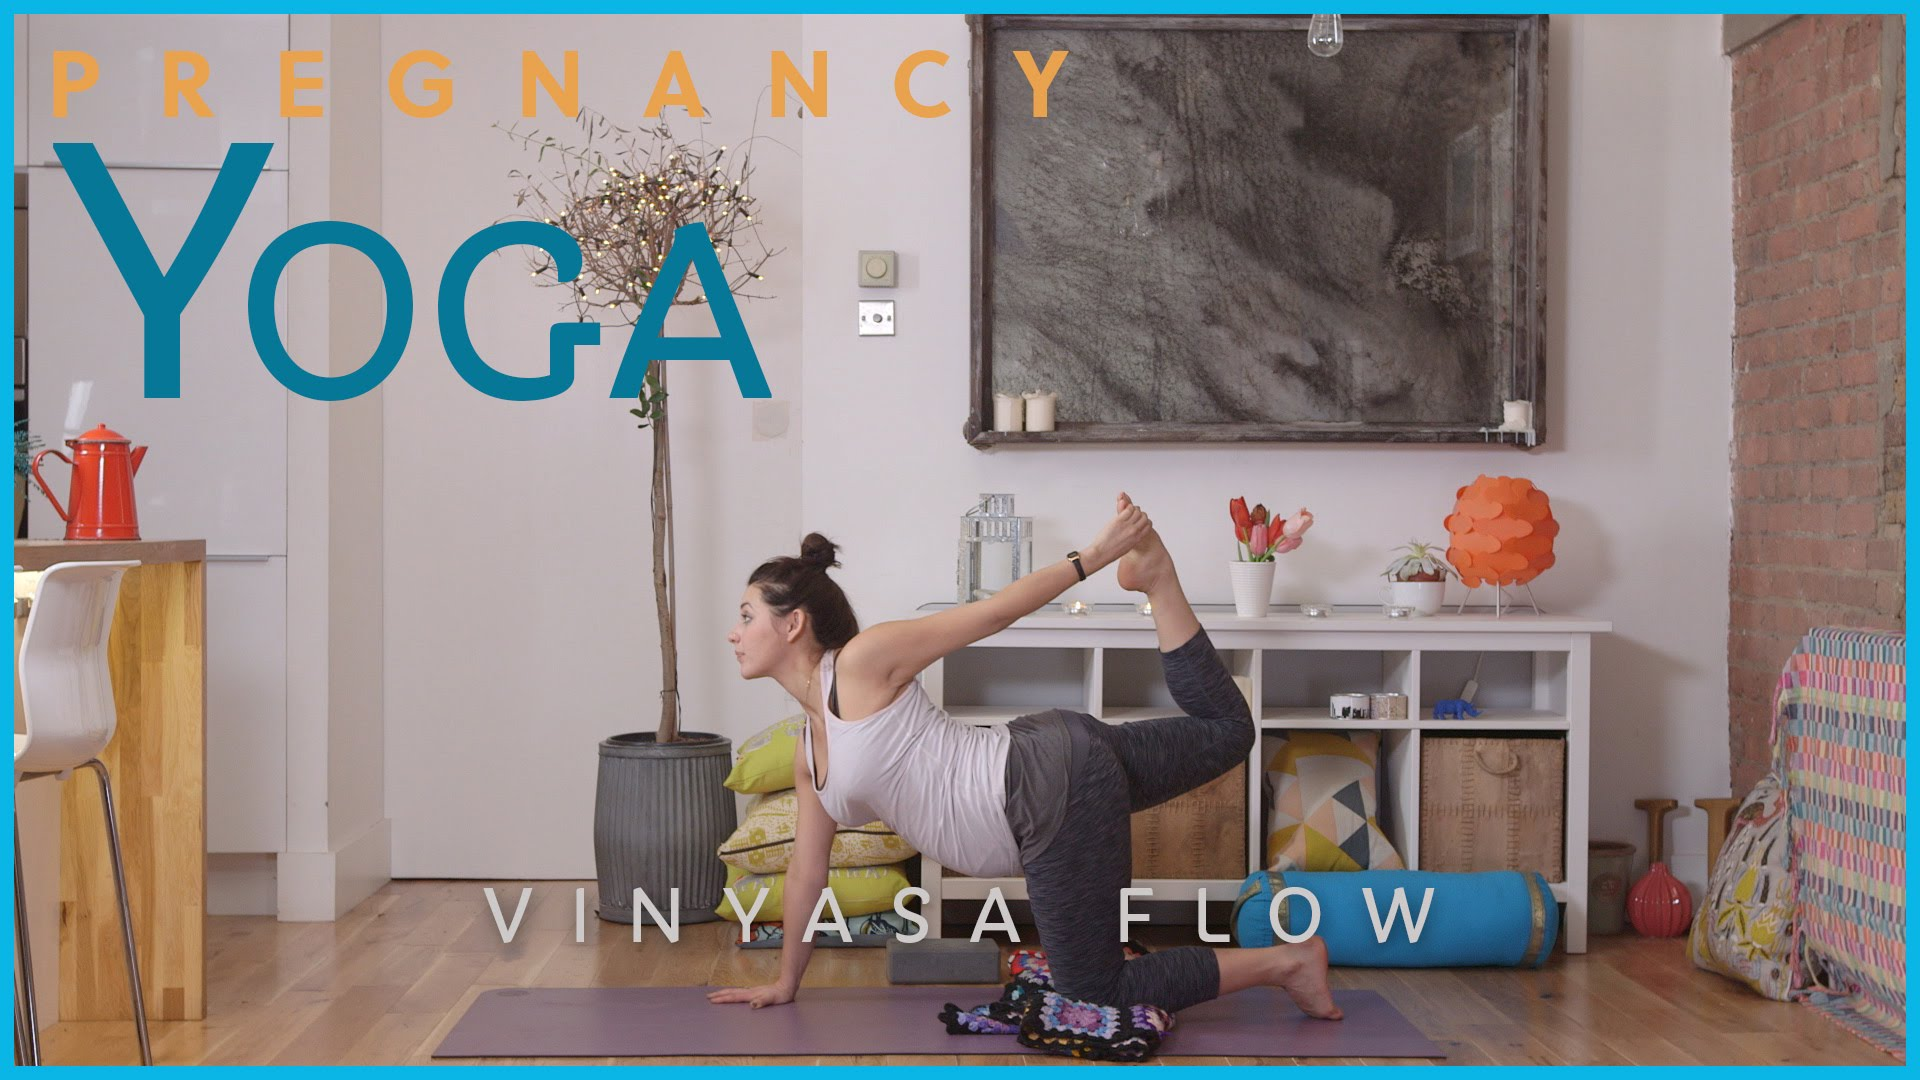 Pregnancy Yoga – Vinyasa Flow